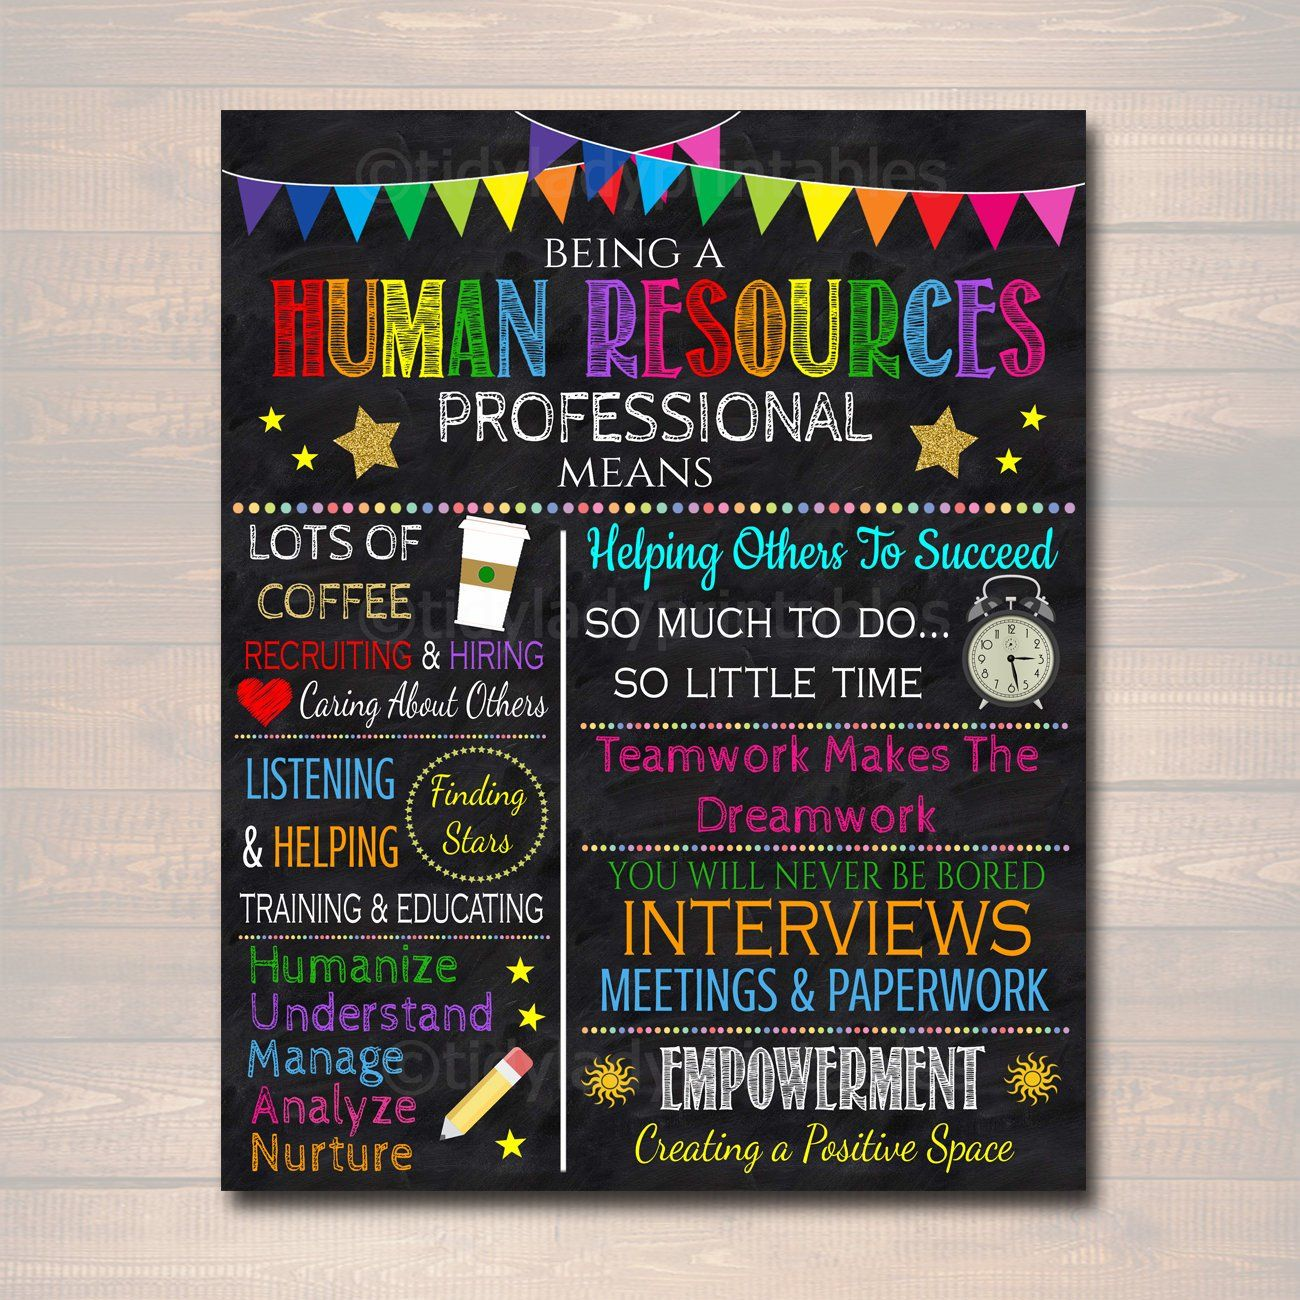 Being a Human Resources Professional Means... Inspirational printable art. A beautiful HR Human Resources Manager, Assistant, Director etc. gift that they can decorate their Human Resources office with! Beautiful, bright and inspirational -this is a great reminder for human resources professionals who are called to do work bigger than themselves. Set this inspirational art gift on their work desk or hang in the office. Features a faux chalkboard background and nice bright colors - prints beautif